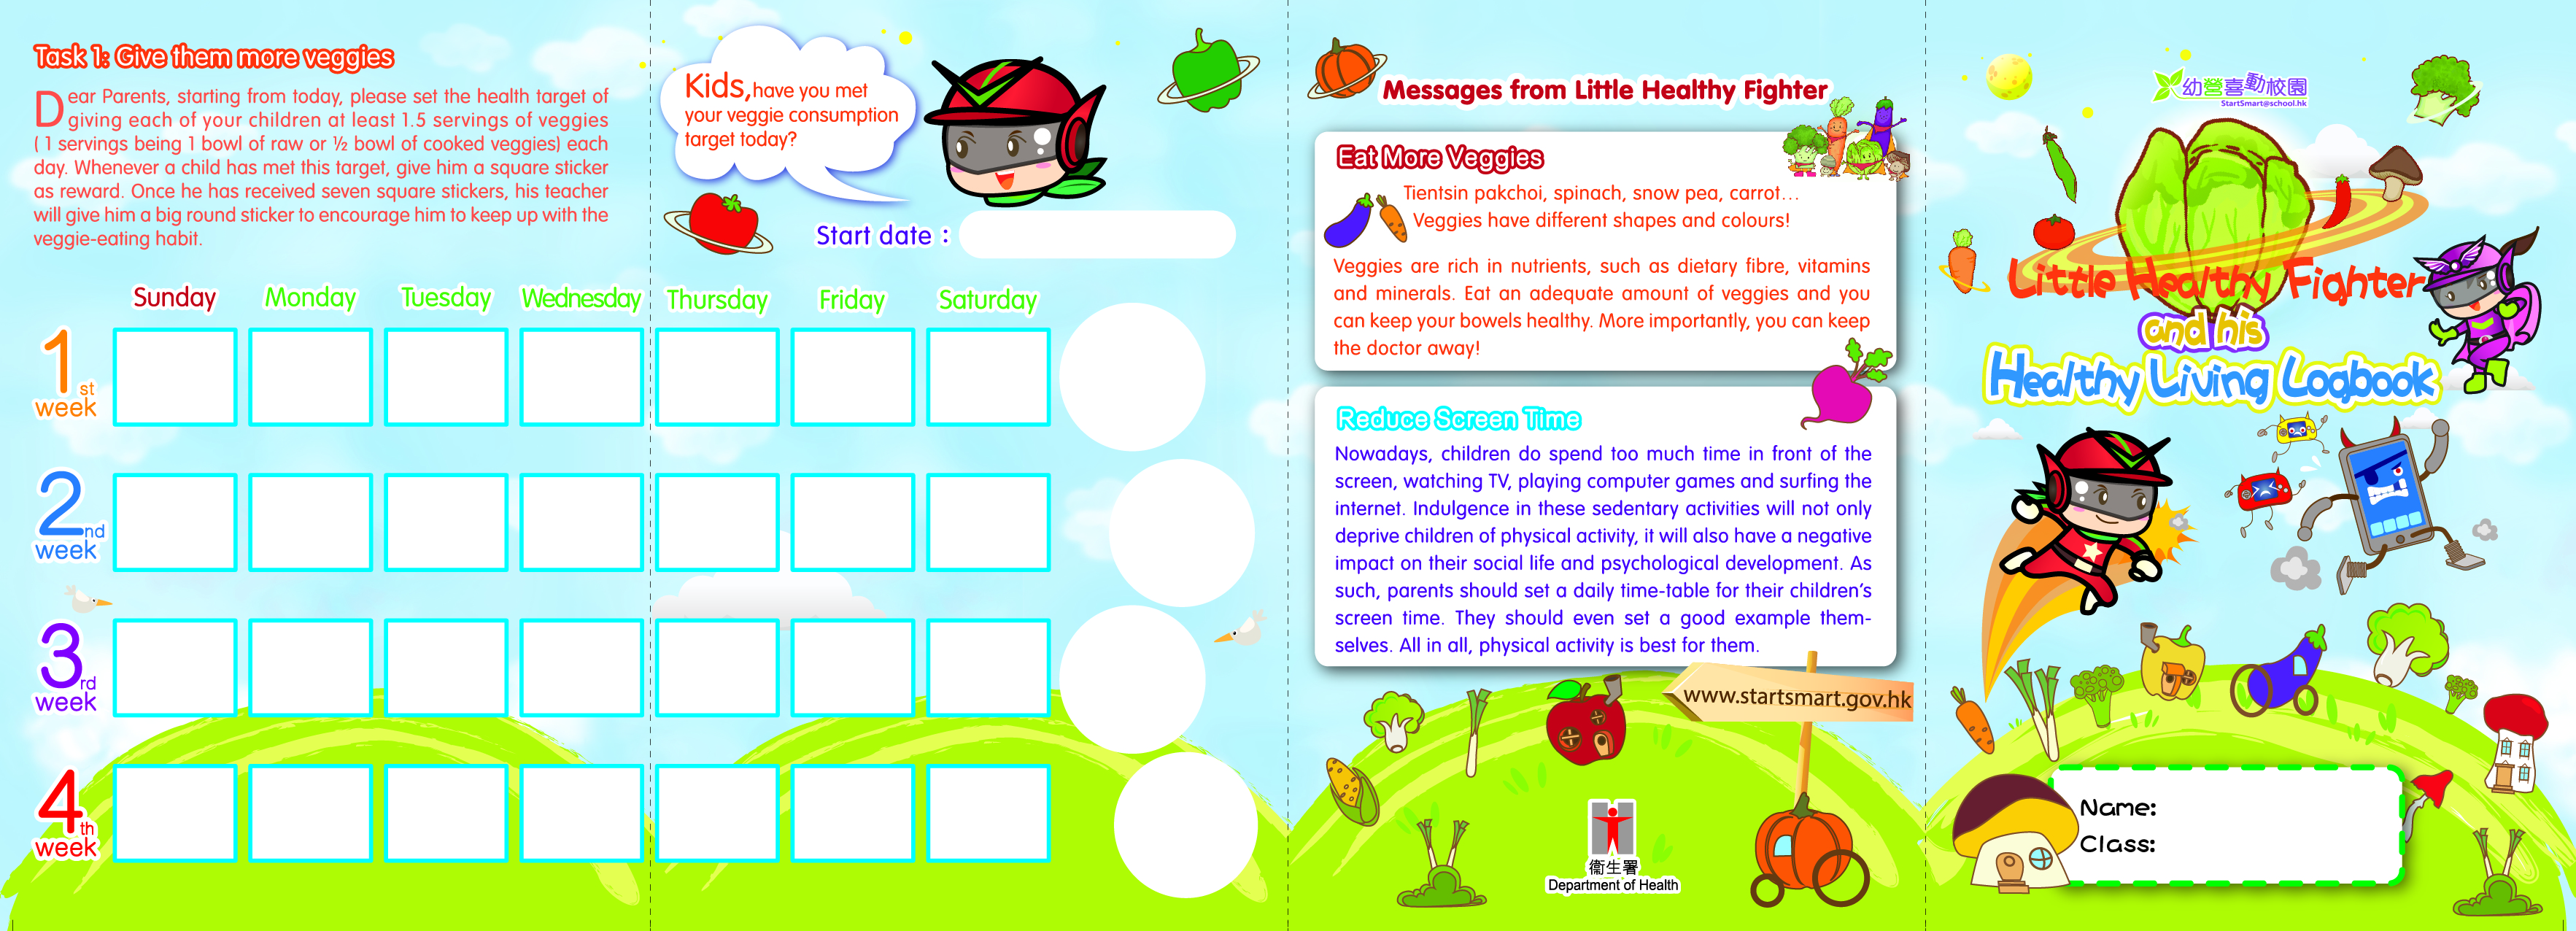 Little Healthy Fighter and Healthy Living Logbook (1)